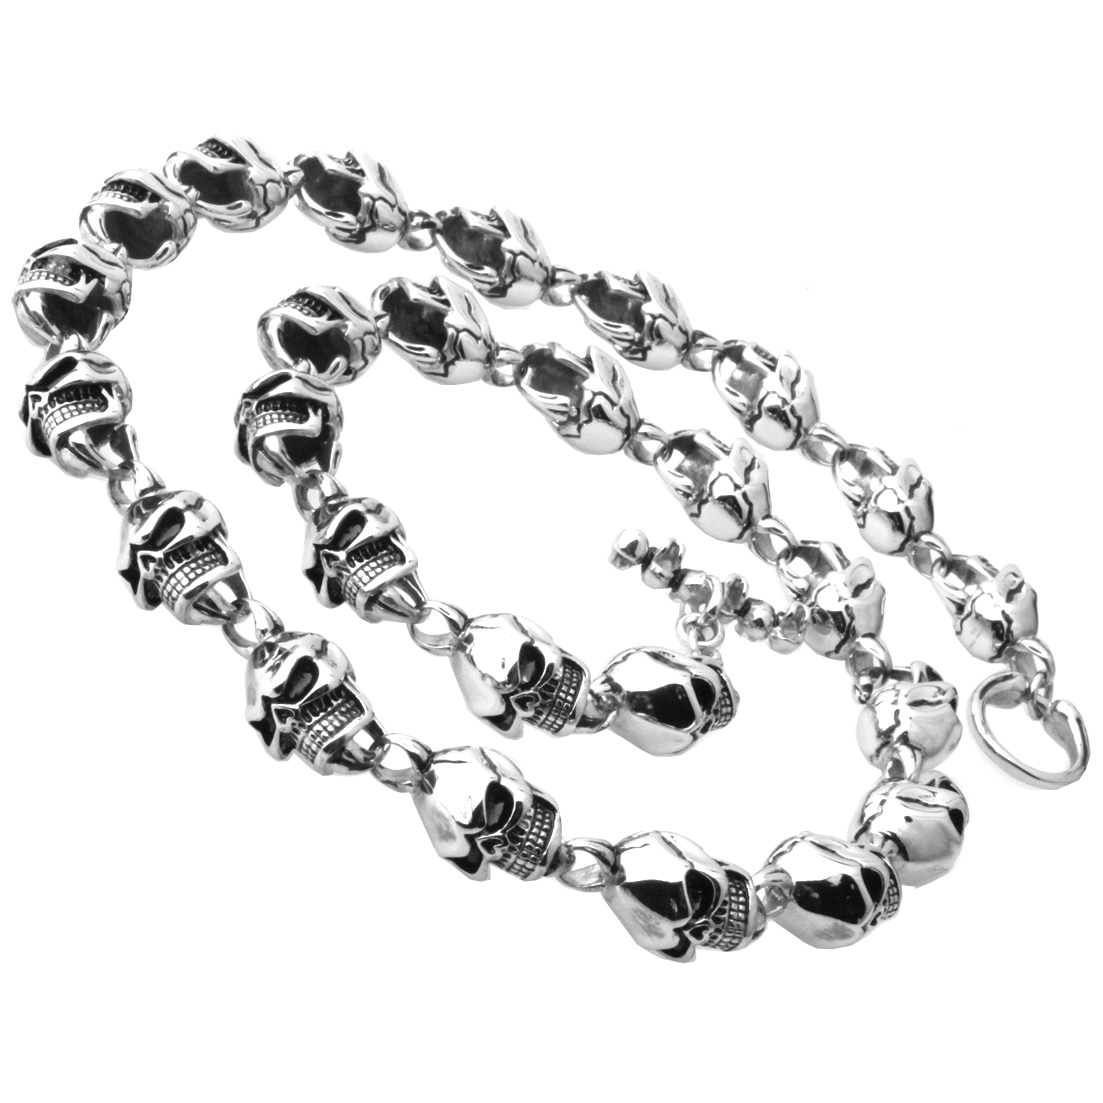 15MM Rock Roll 316L Stainless Steel Silver Black Color Skeleton Skull Link Chain Biker Jewelry Men's Necklace 24